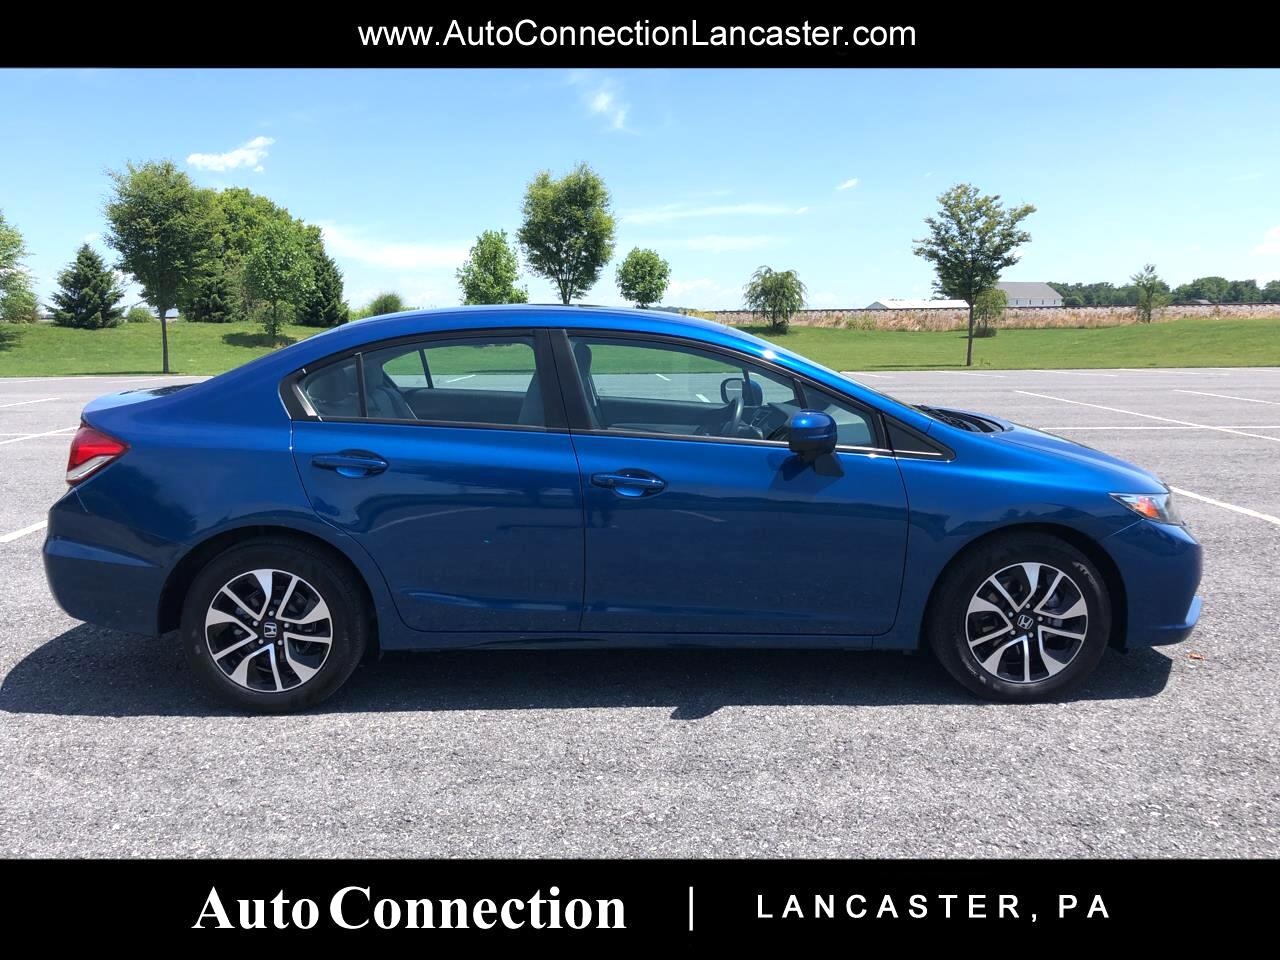 2015 Honda Civic Sedan 4dr CVT EX